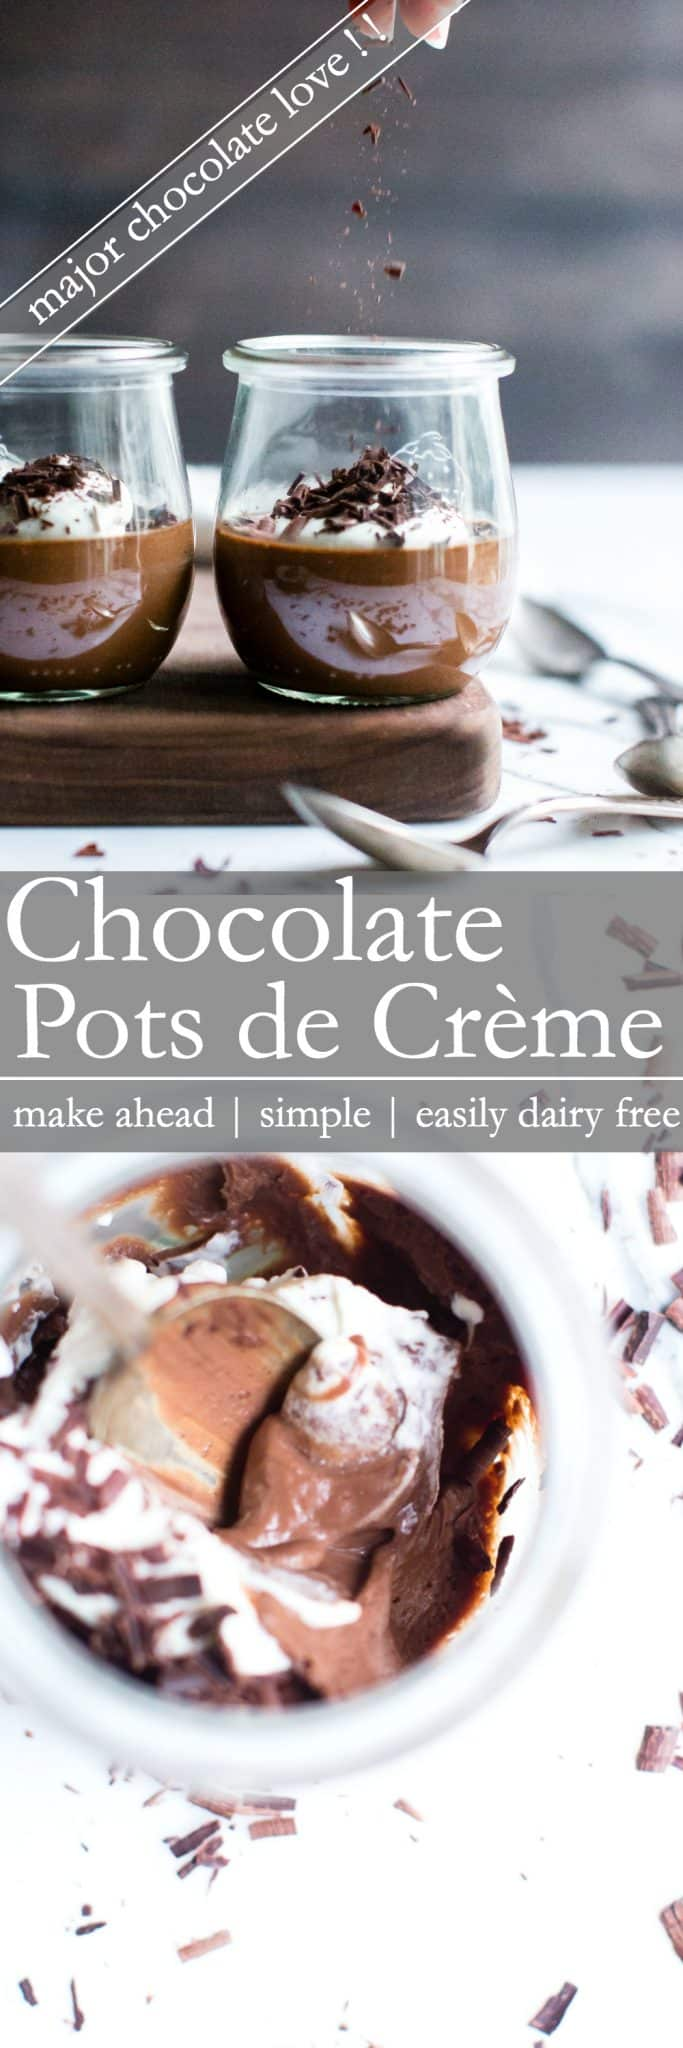 A most luxurious and rich dessert with simple ingredients and minimal effort. Chocolate Pots de Crème with a dairy free option, is a go-to recipe for make ahead ease. #SimpleDessert #ChocolatePotsdeCreme #DairyFree Option #GlutenFreeDairyFreeDessert #ChocoalteDessert #EasyChocolateDessert